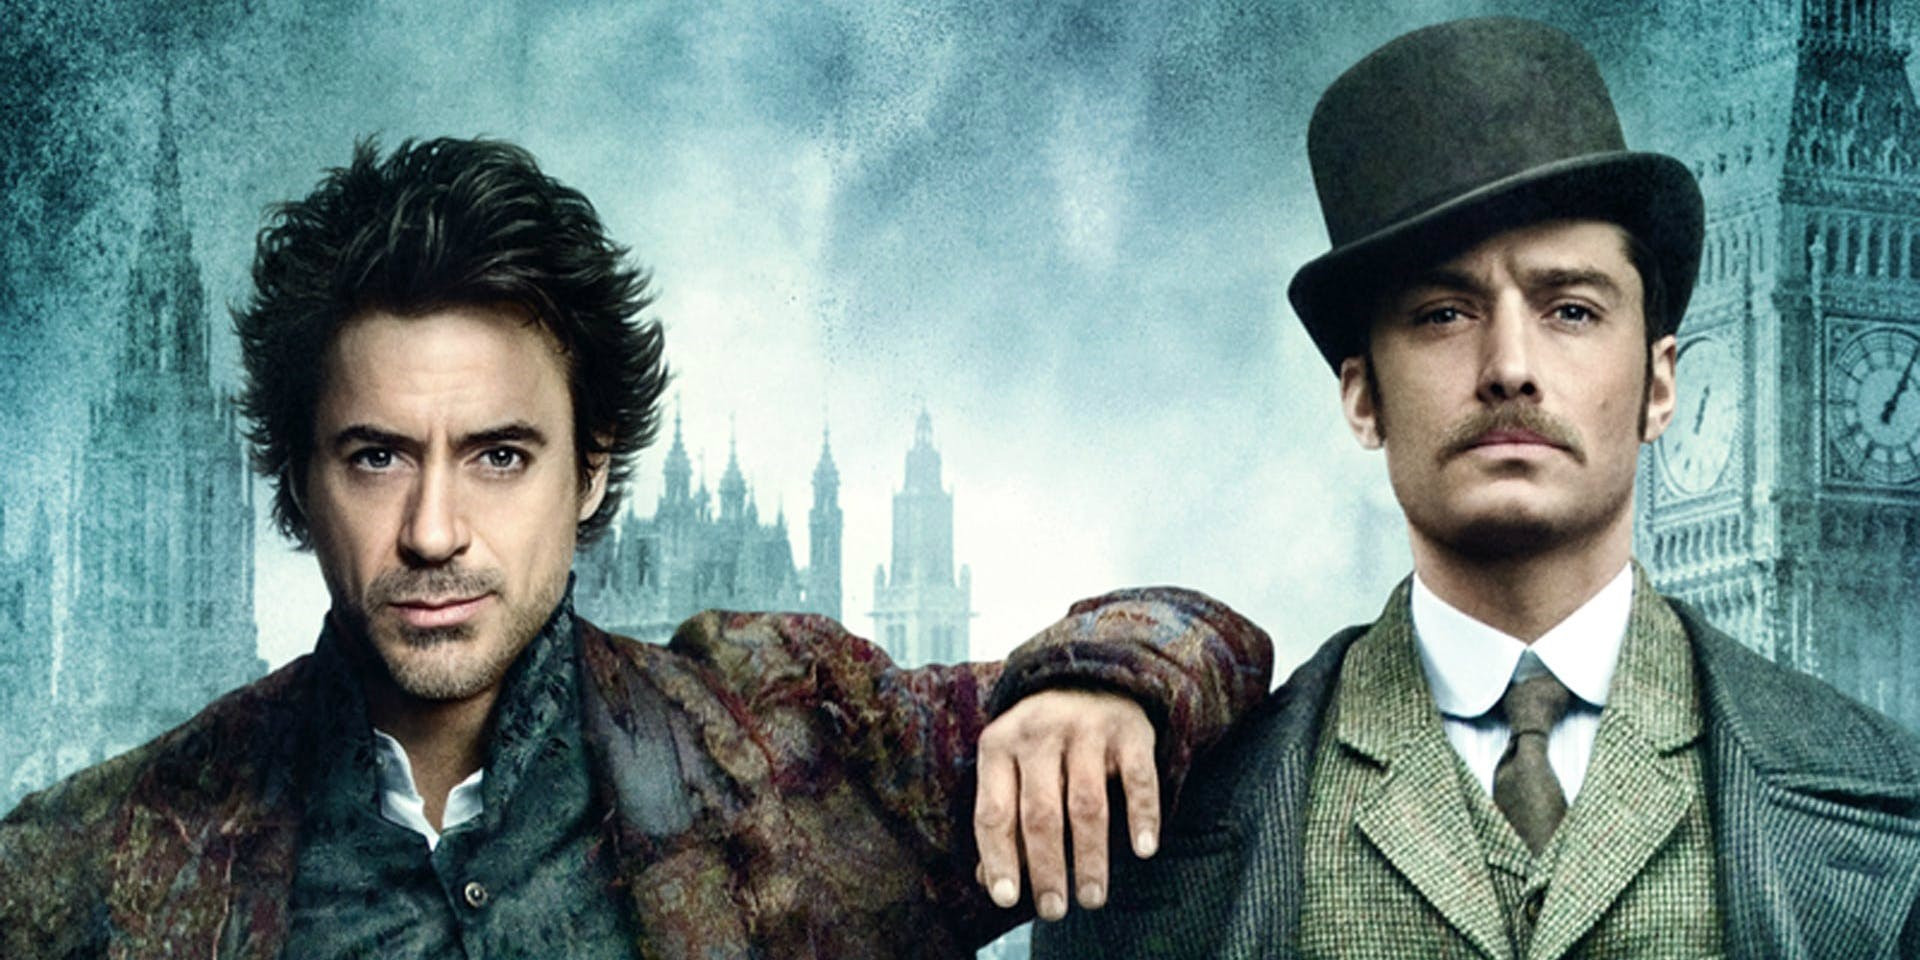 Sherlock Holmes 3 delayed until December 2021